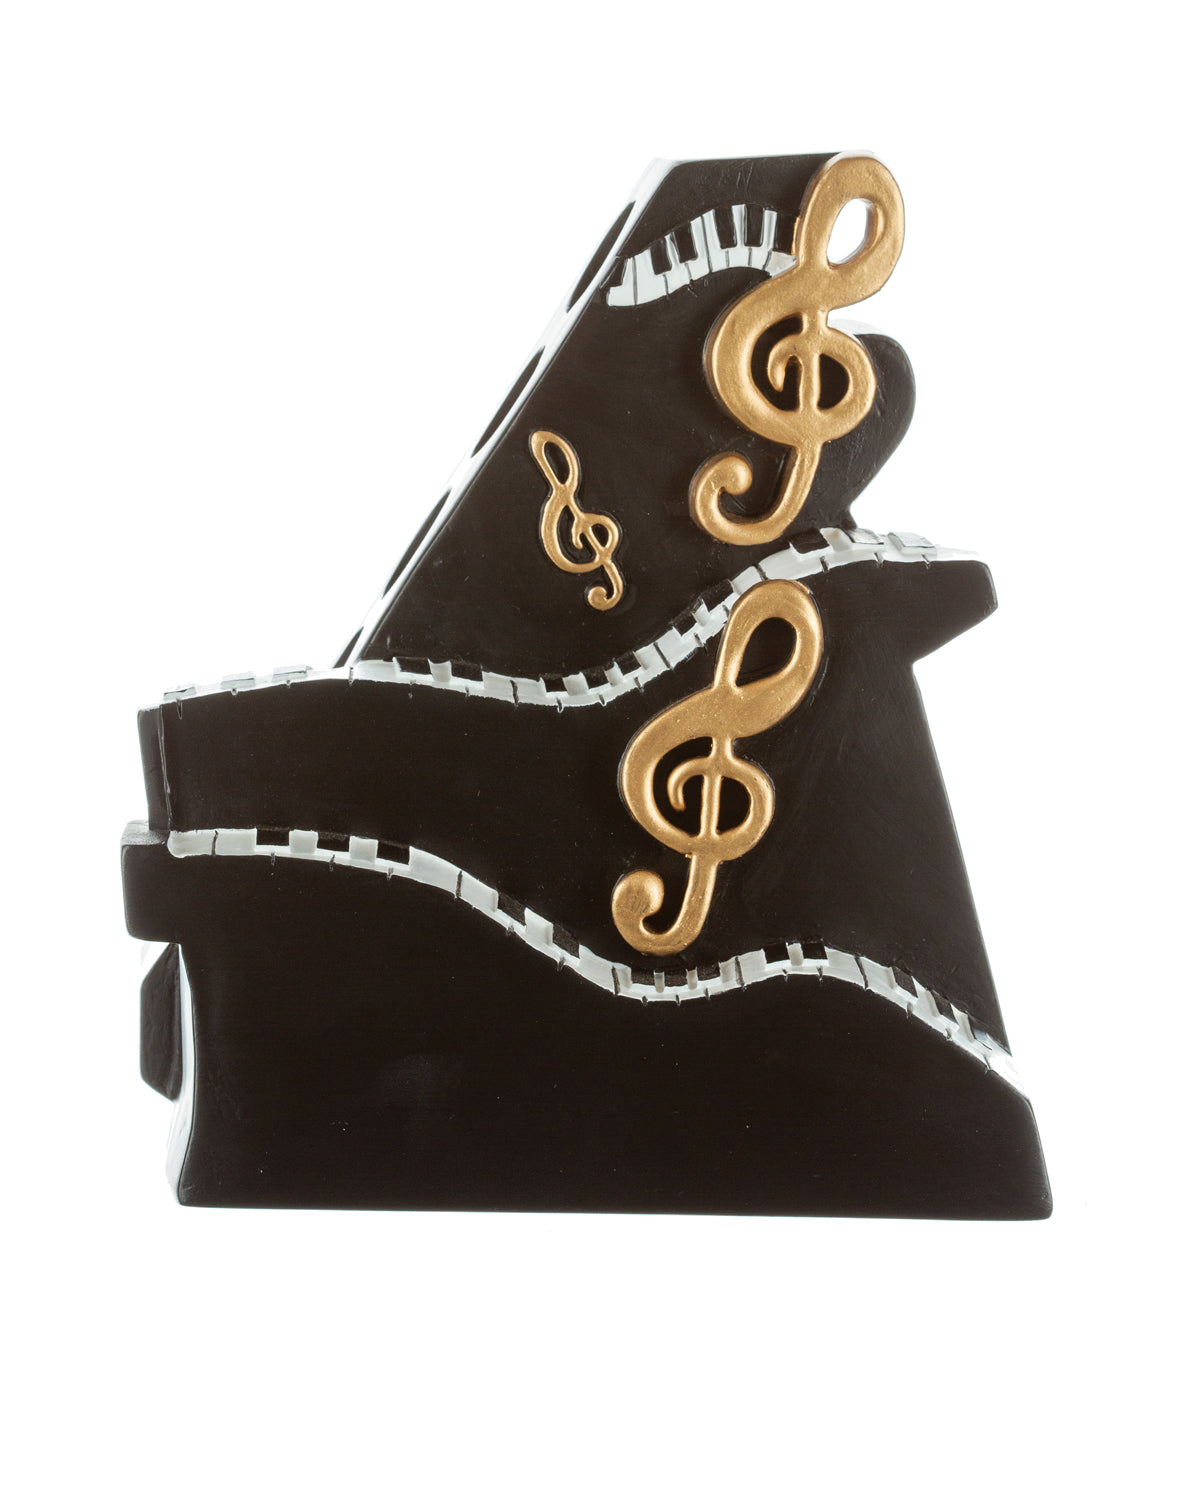 Music Piano Toothbrush Holder